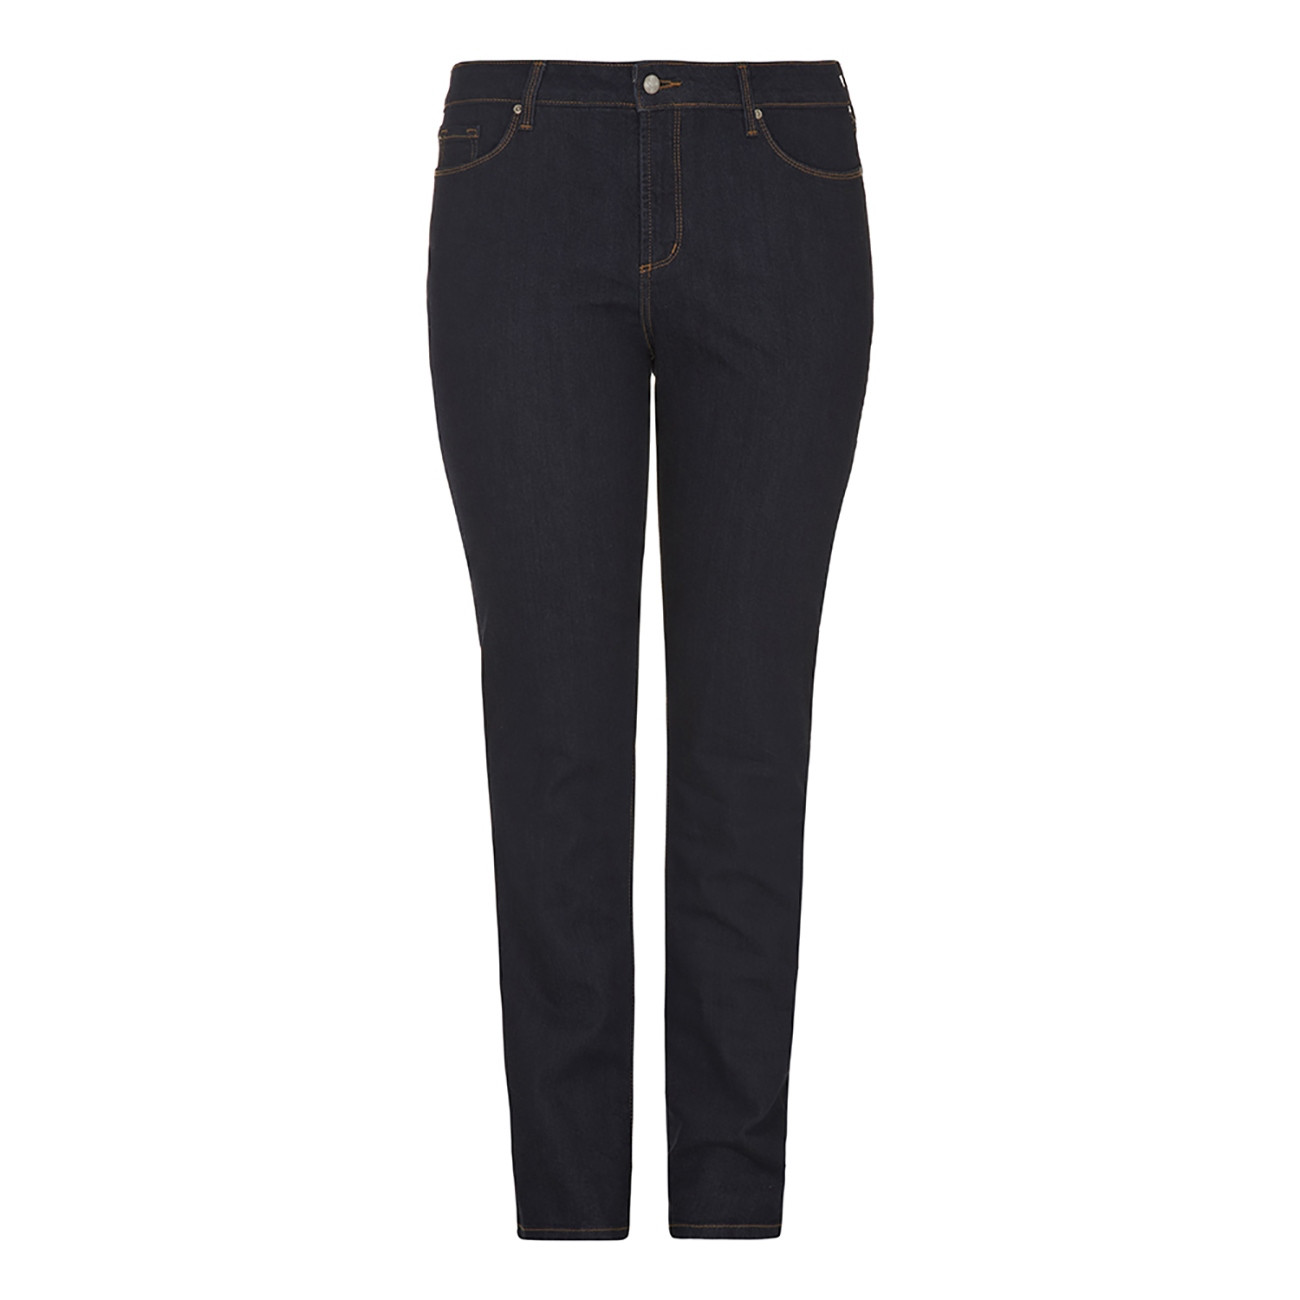 NYDJs Straight Leg Dark Denim Jeans